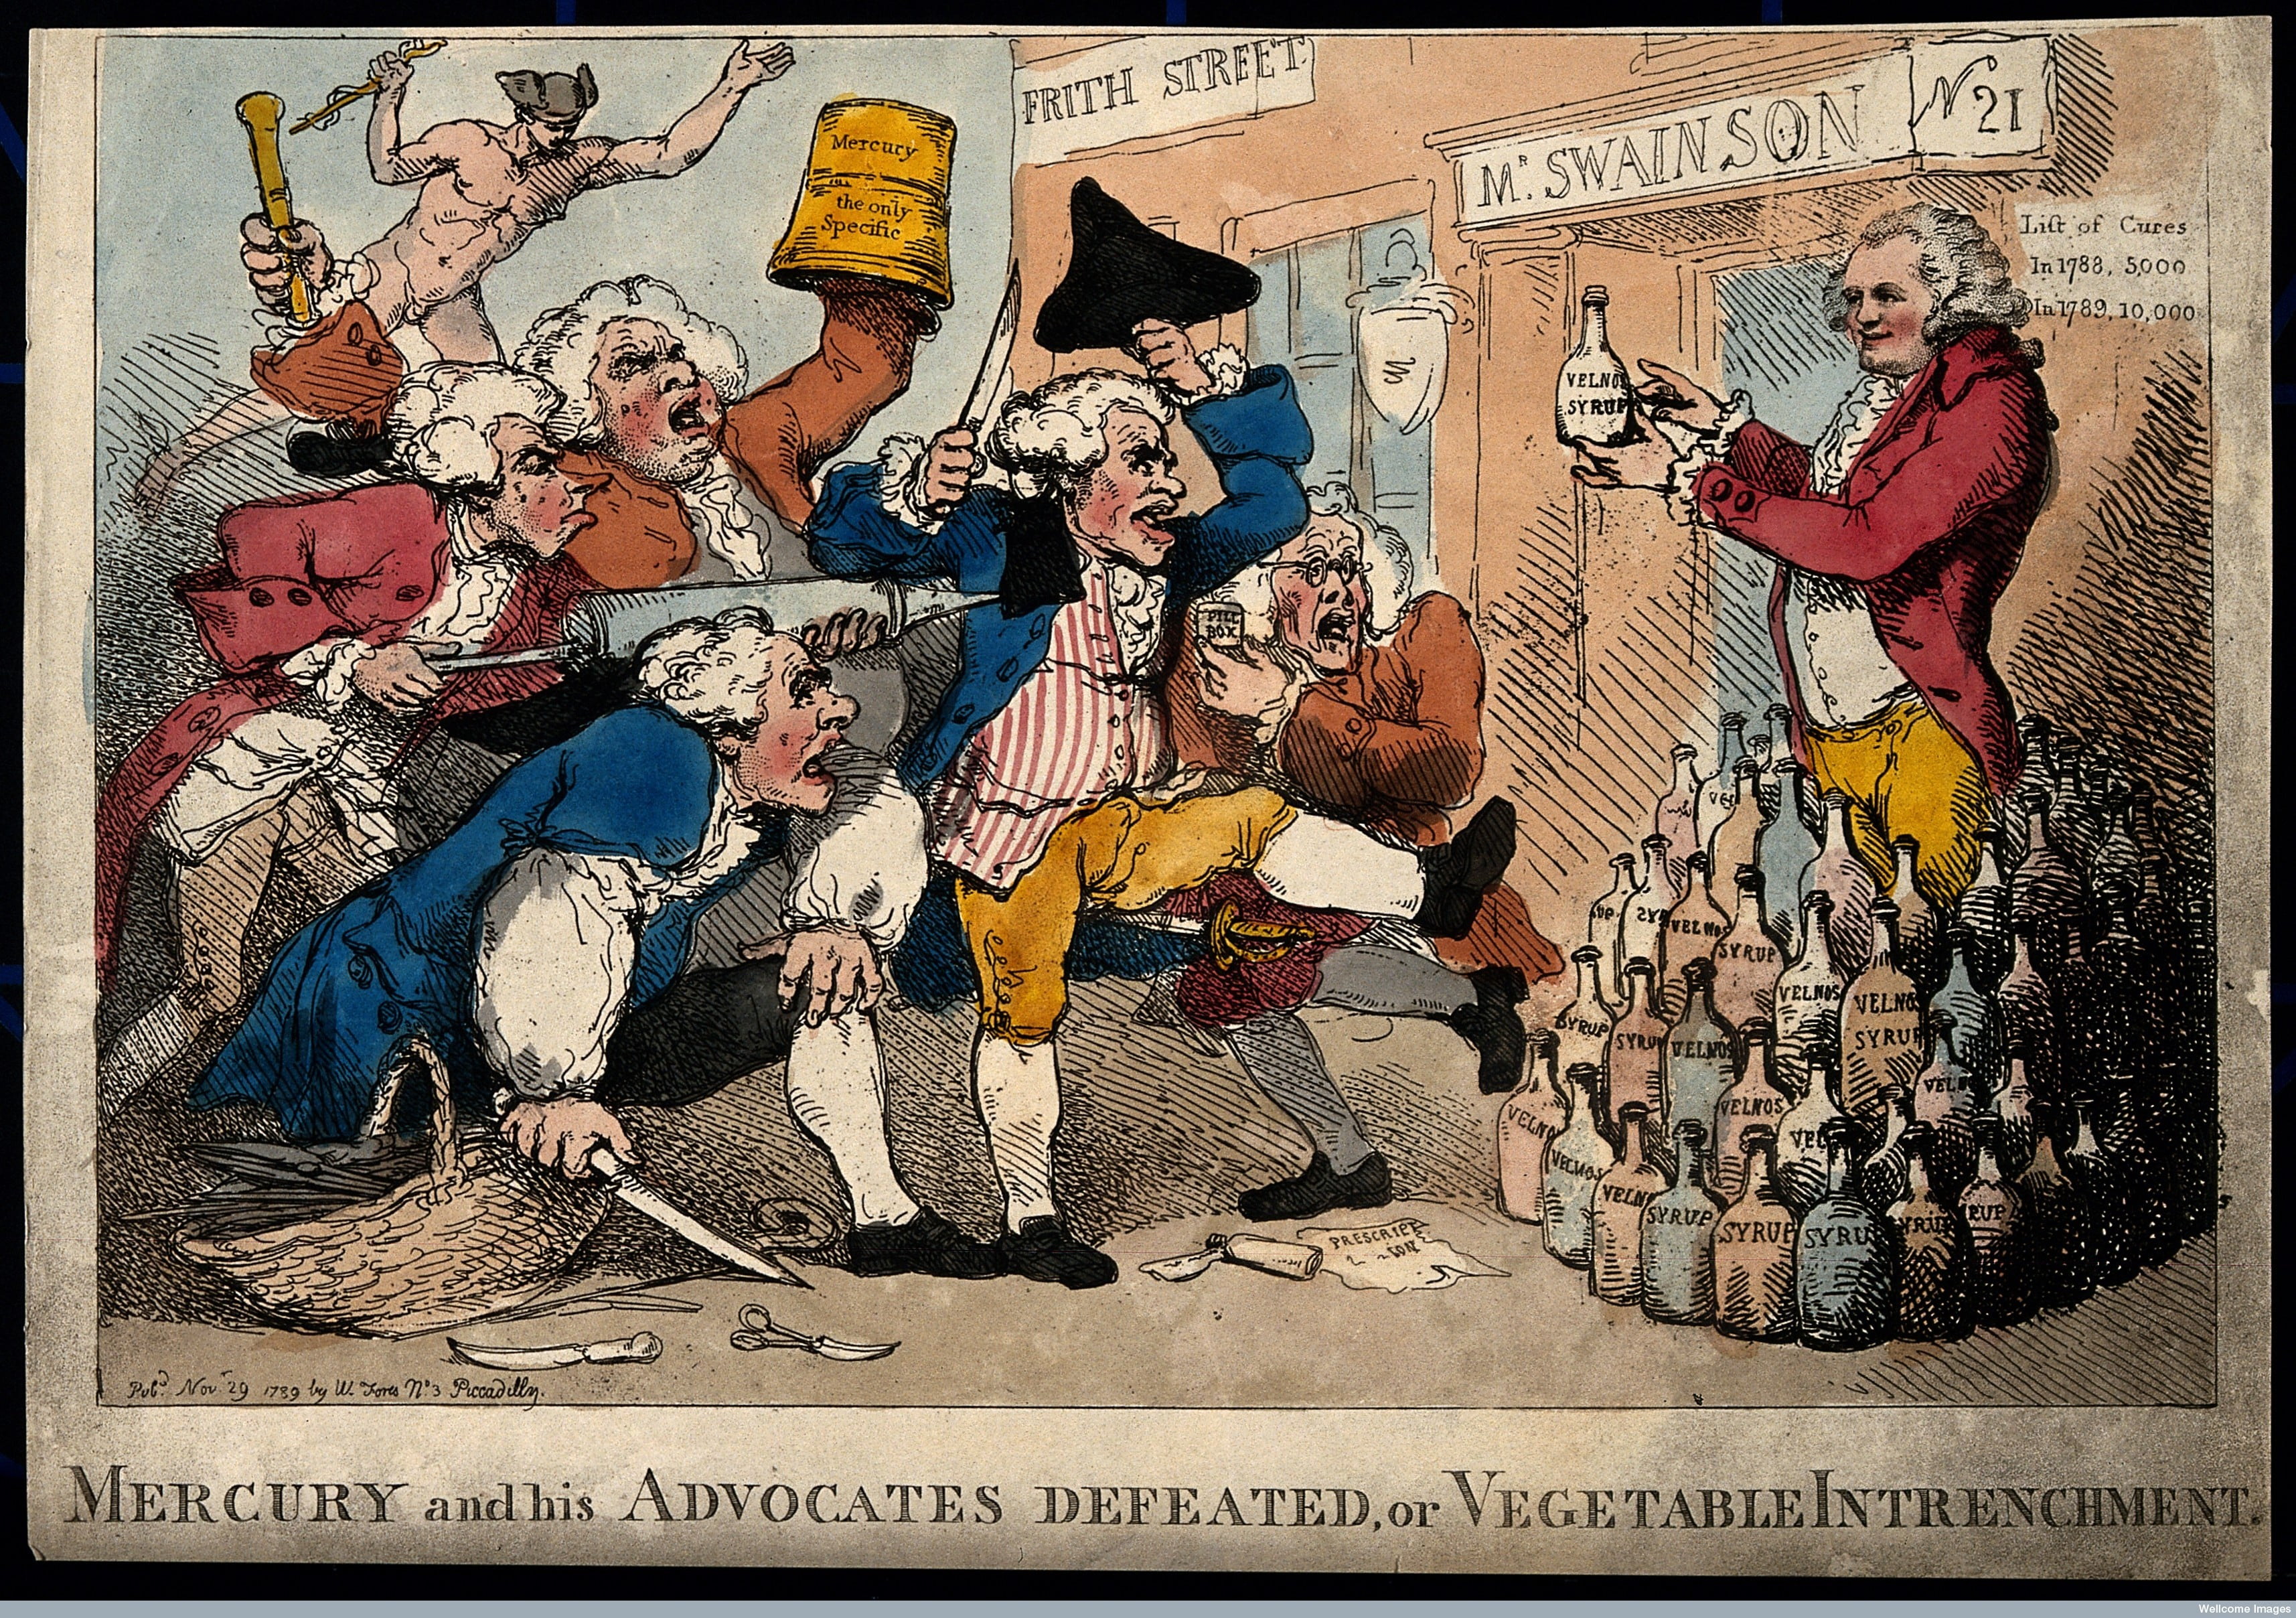 Isaac Swainson promoting his 'Velno's Vegetable Syrup', facing an onslaught of rival practitioners advocating mercury.